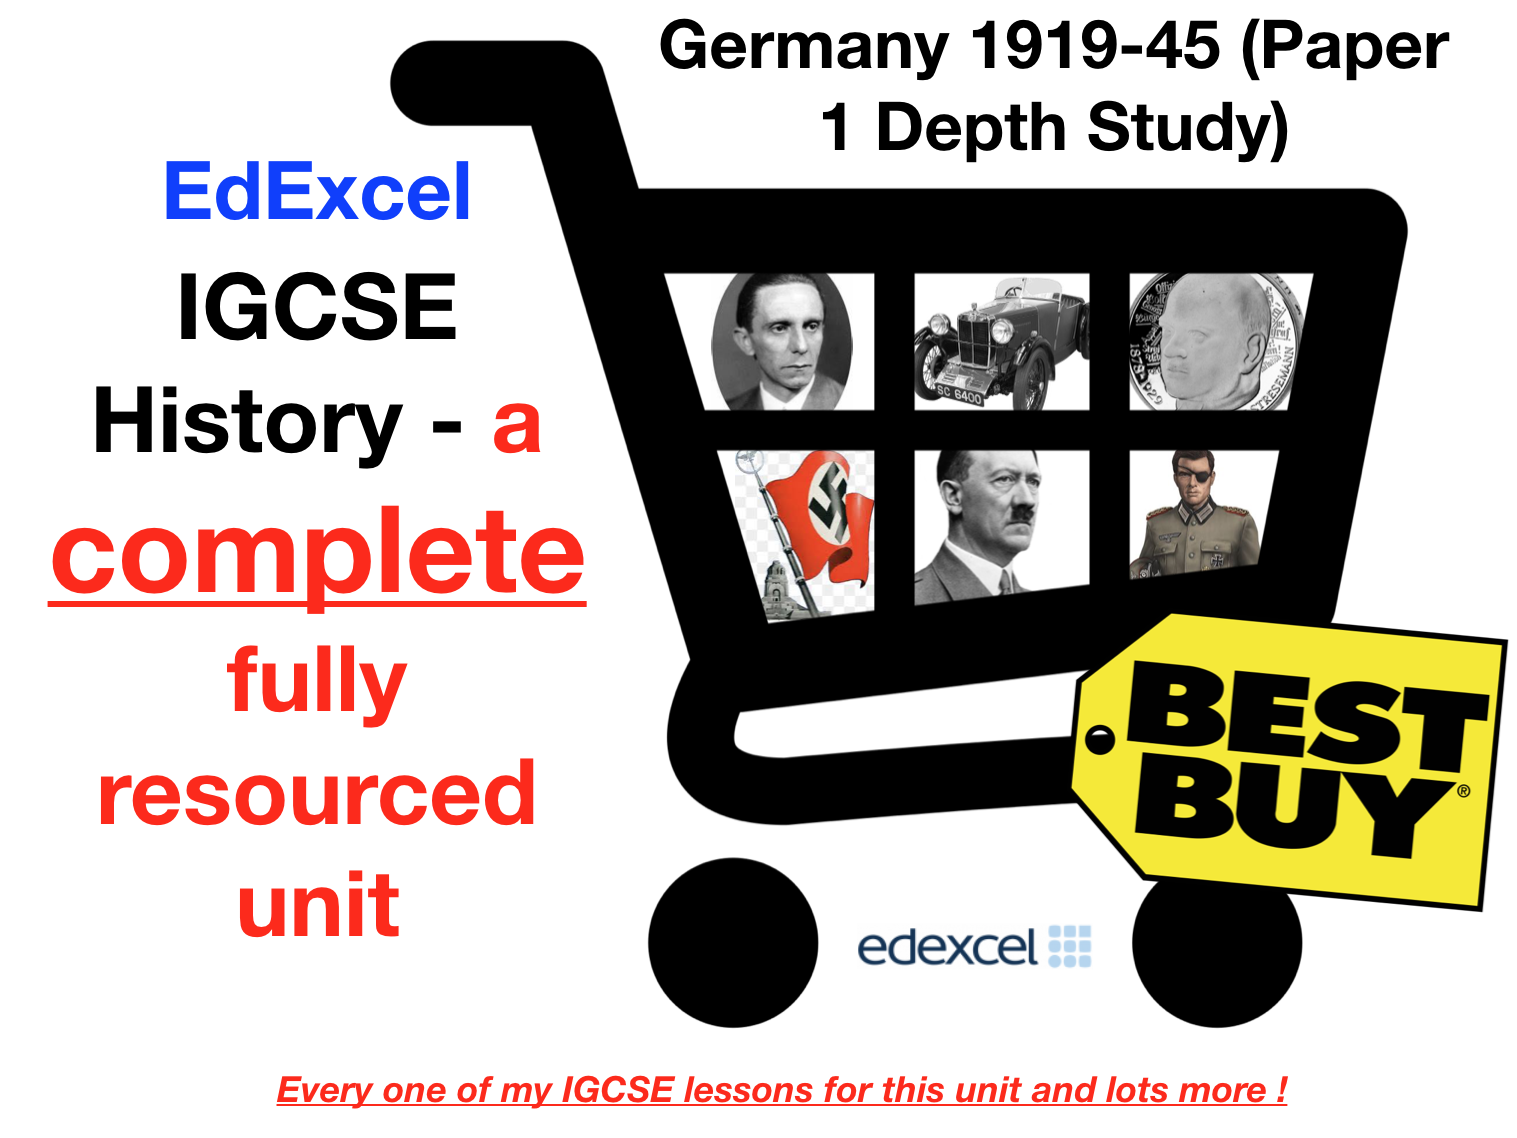 EdExcel IGCSE History - Germany 1918-45 Full Unit Paper 1 Depth Study Bundle (with Revision Menu)